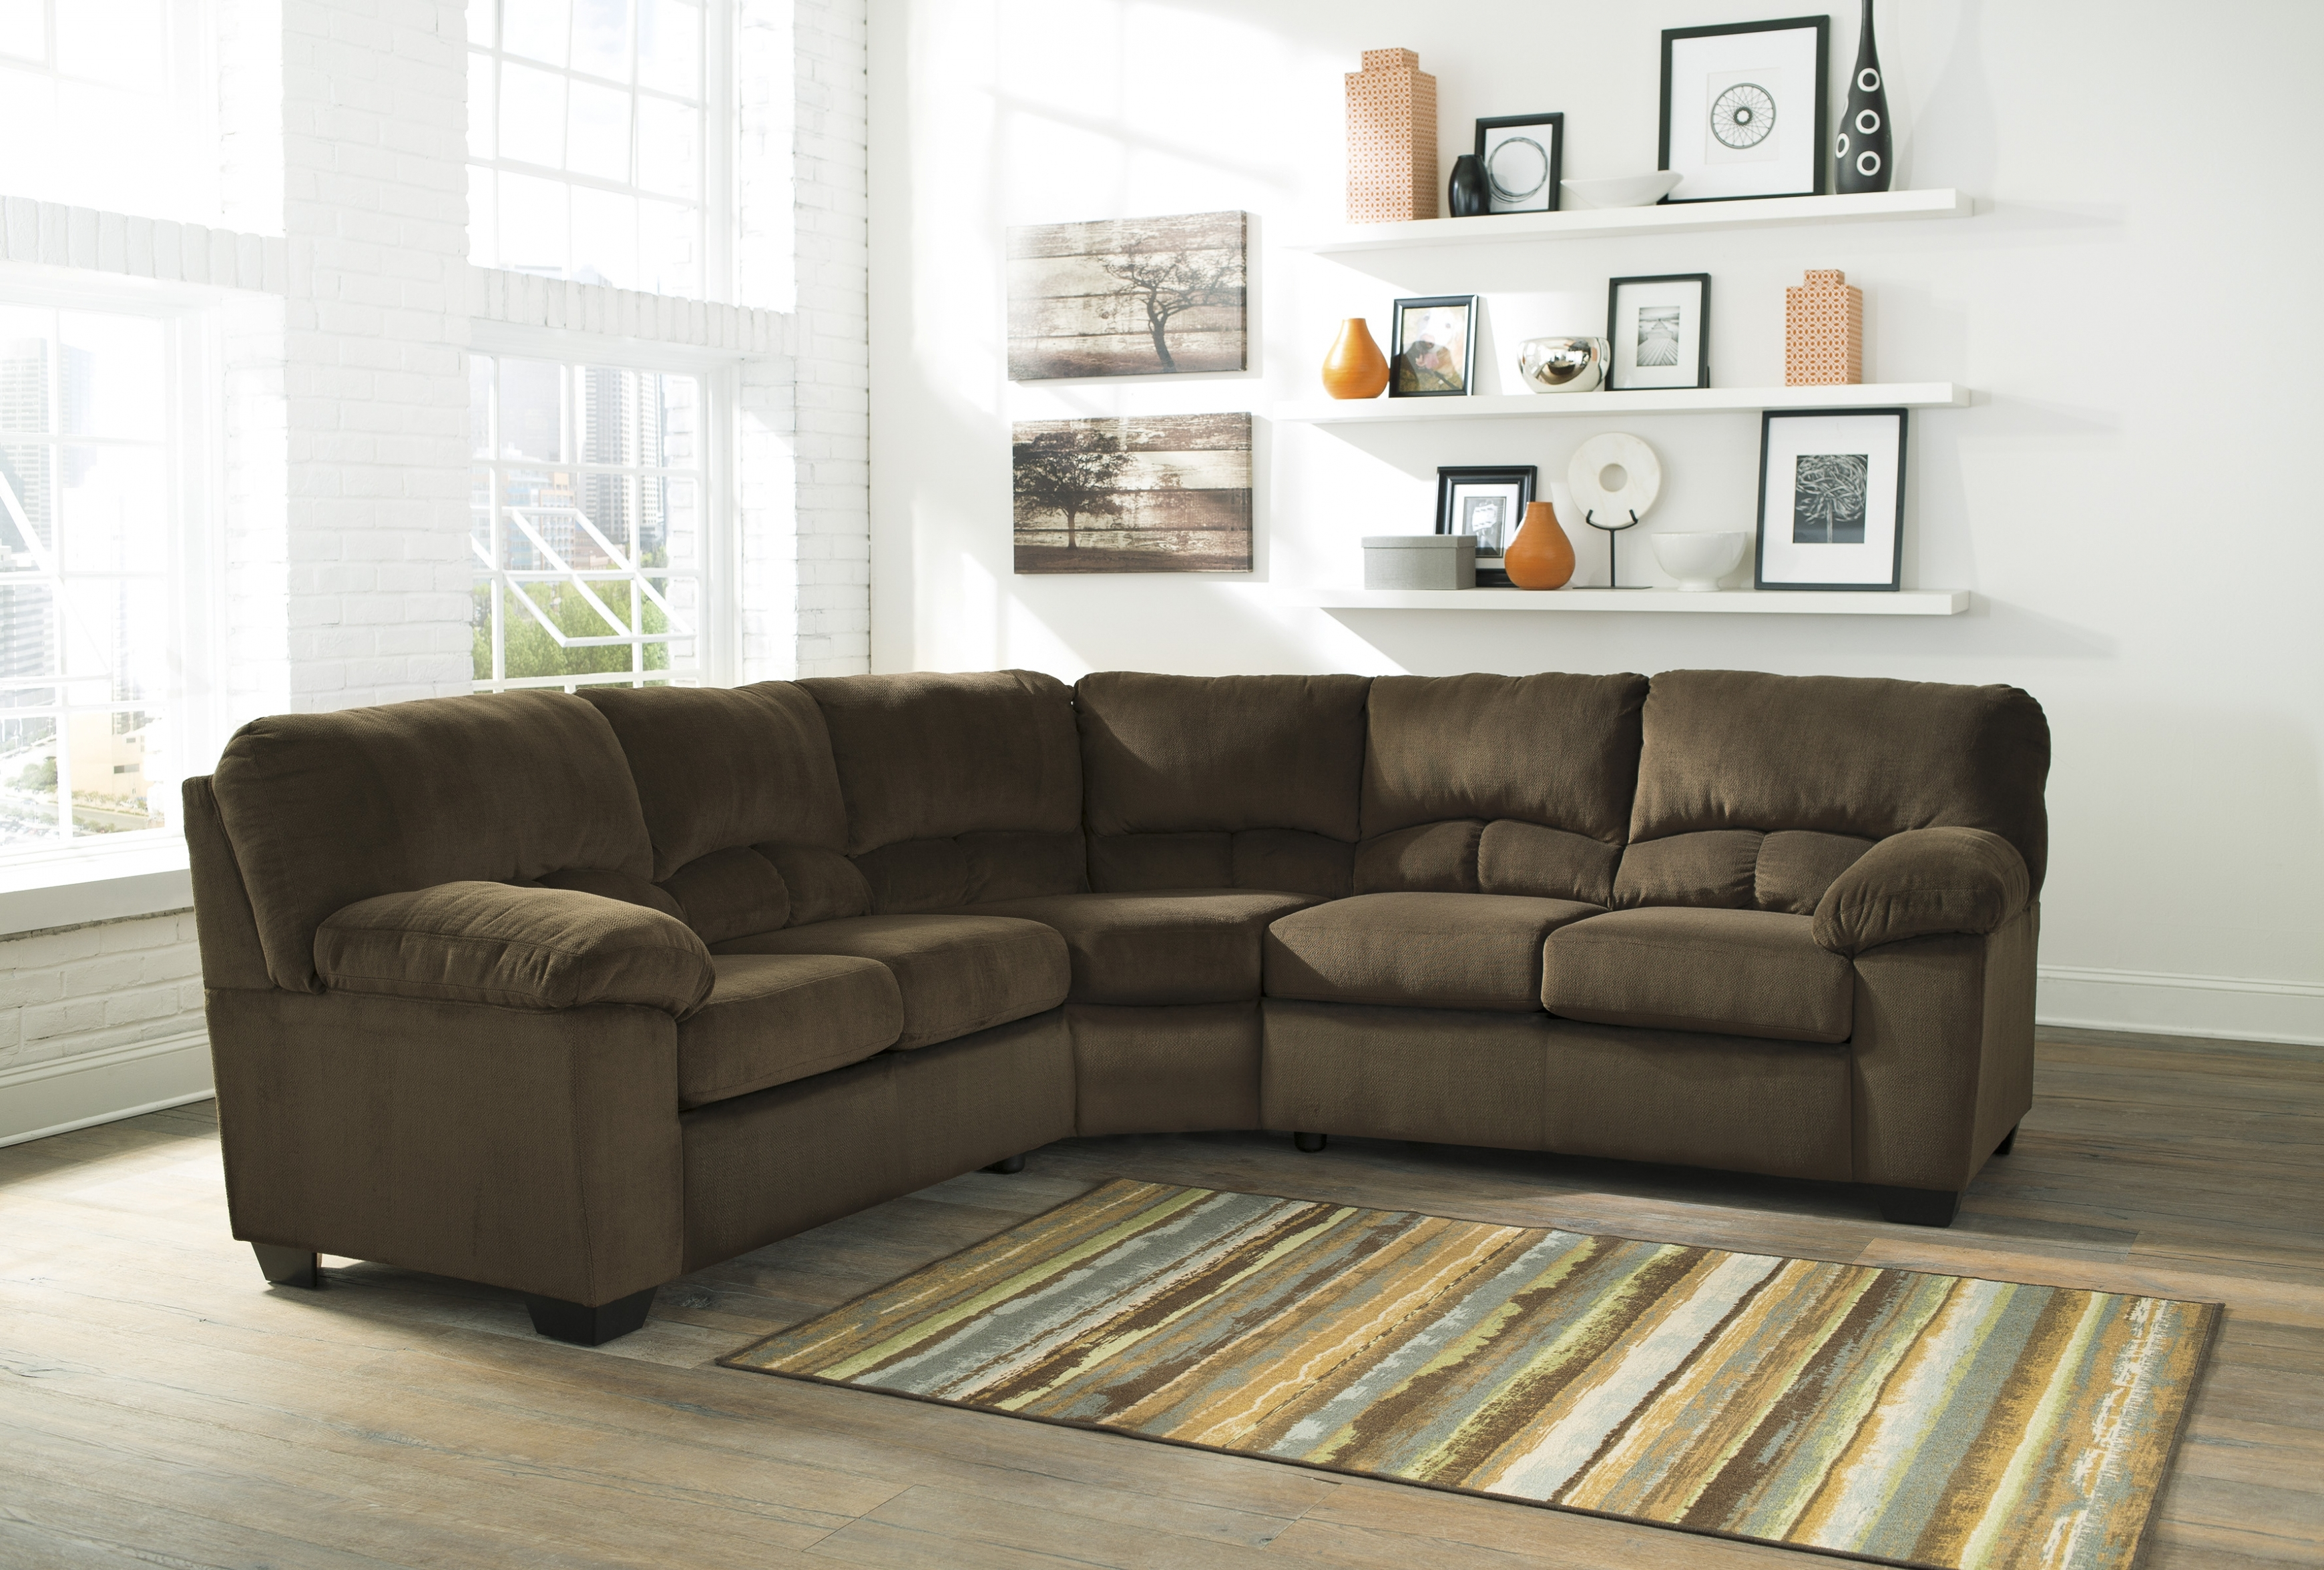 Sectional Sofas At Havertys Intended For 2019 Sofa: Sofas : Fabulous Black Sectional  Sofa Havertys